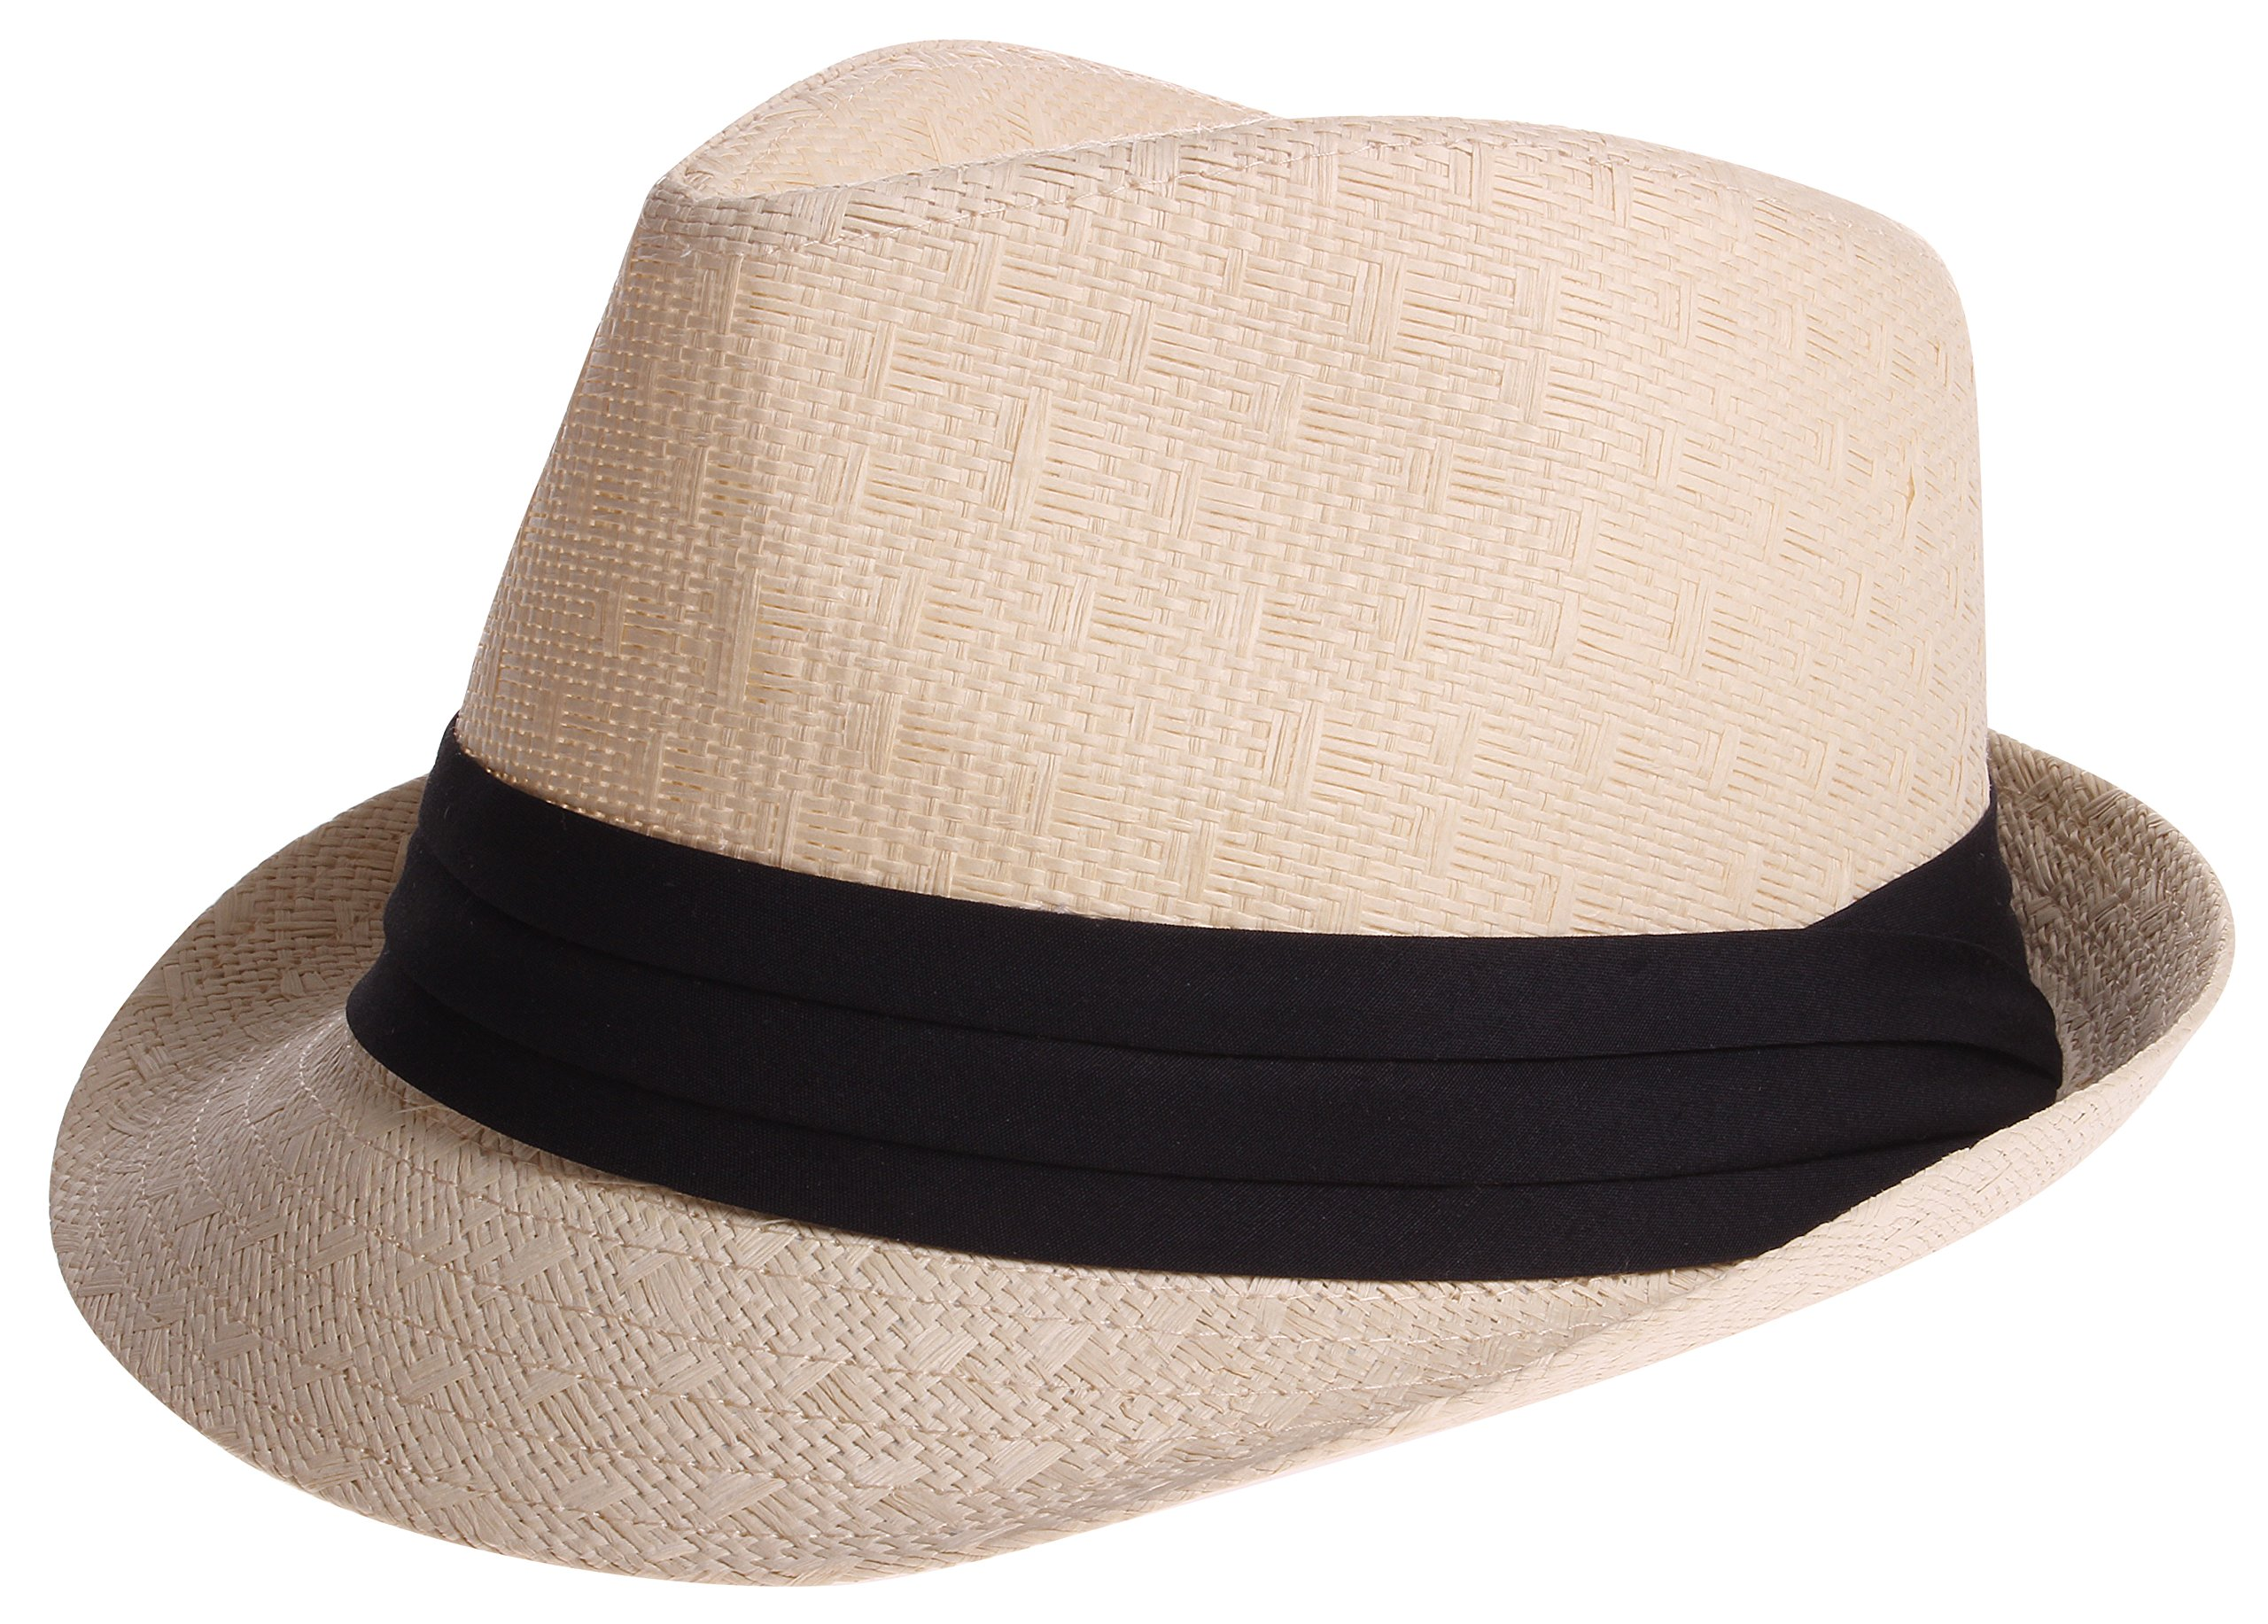 Enimay Vintage Unisex Fedora Hat Classic Timeless Light Weight 2118 - Beige S/m